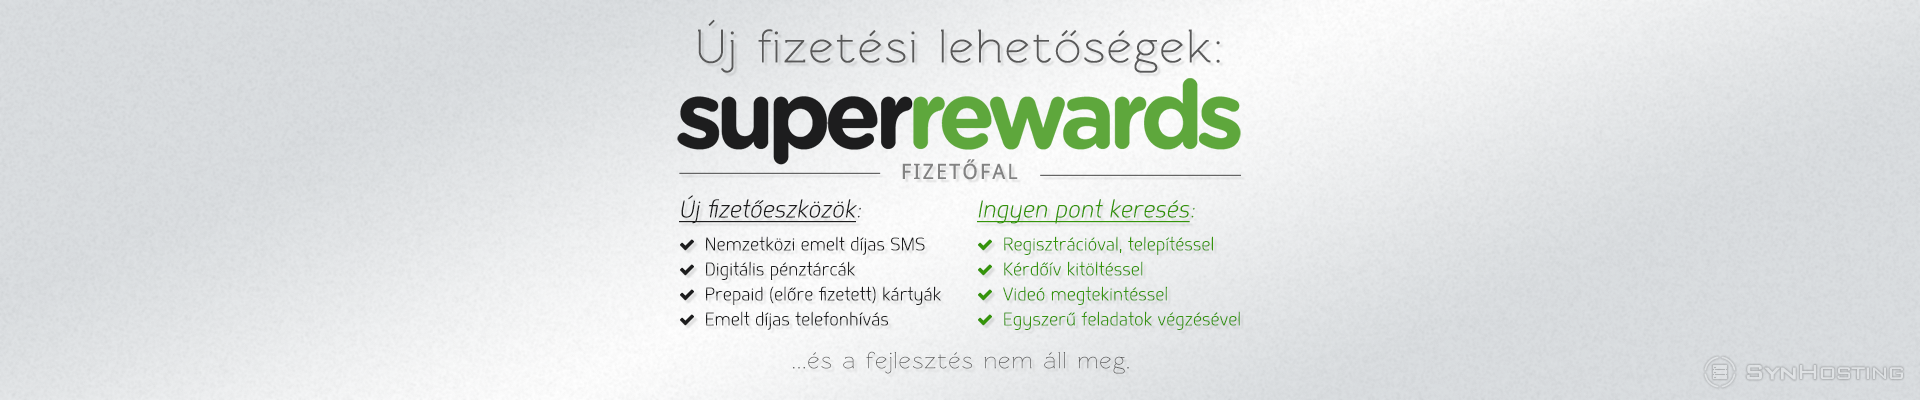 SuperRewards fizetőfal